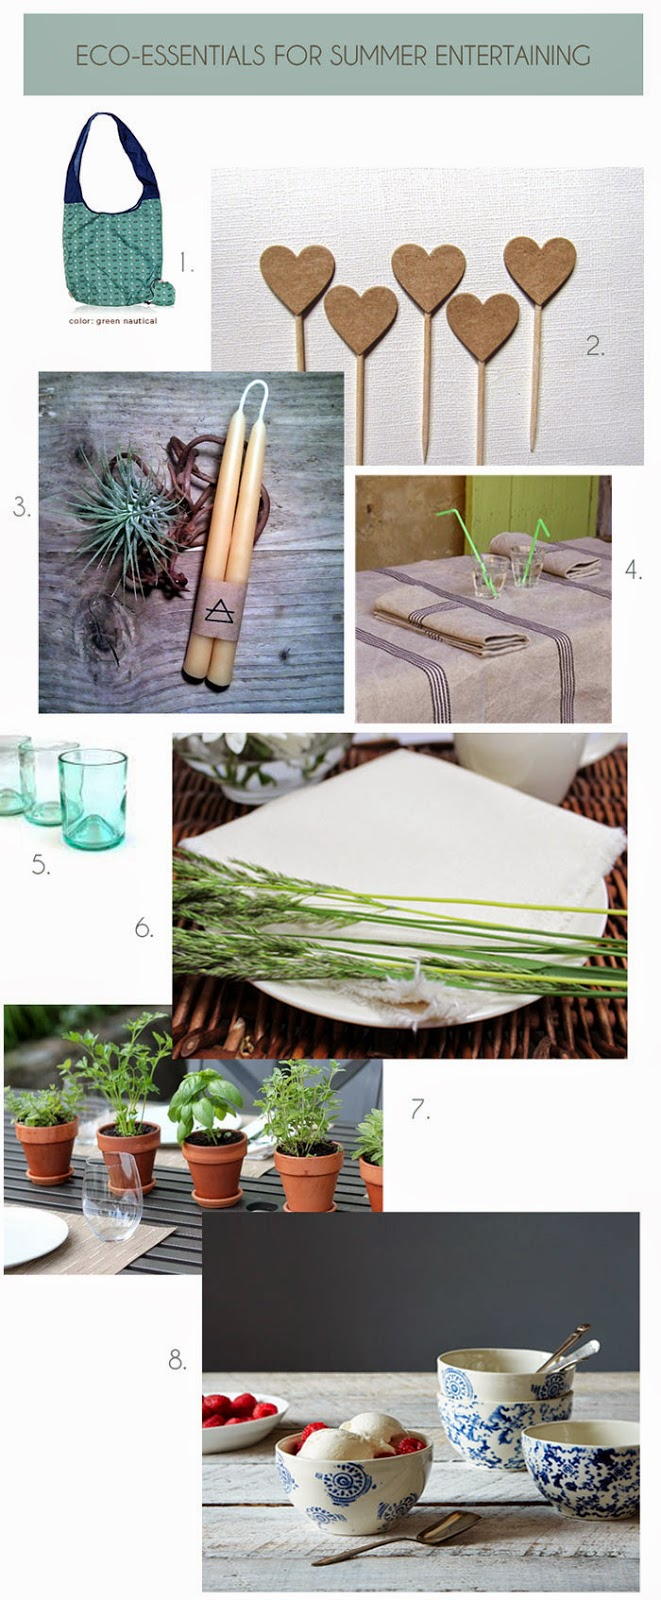 eco-friendly products for outdoor table setting